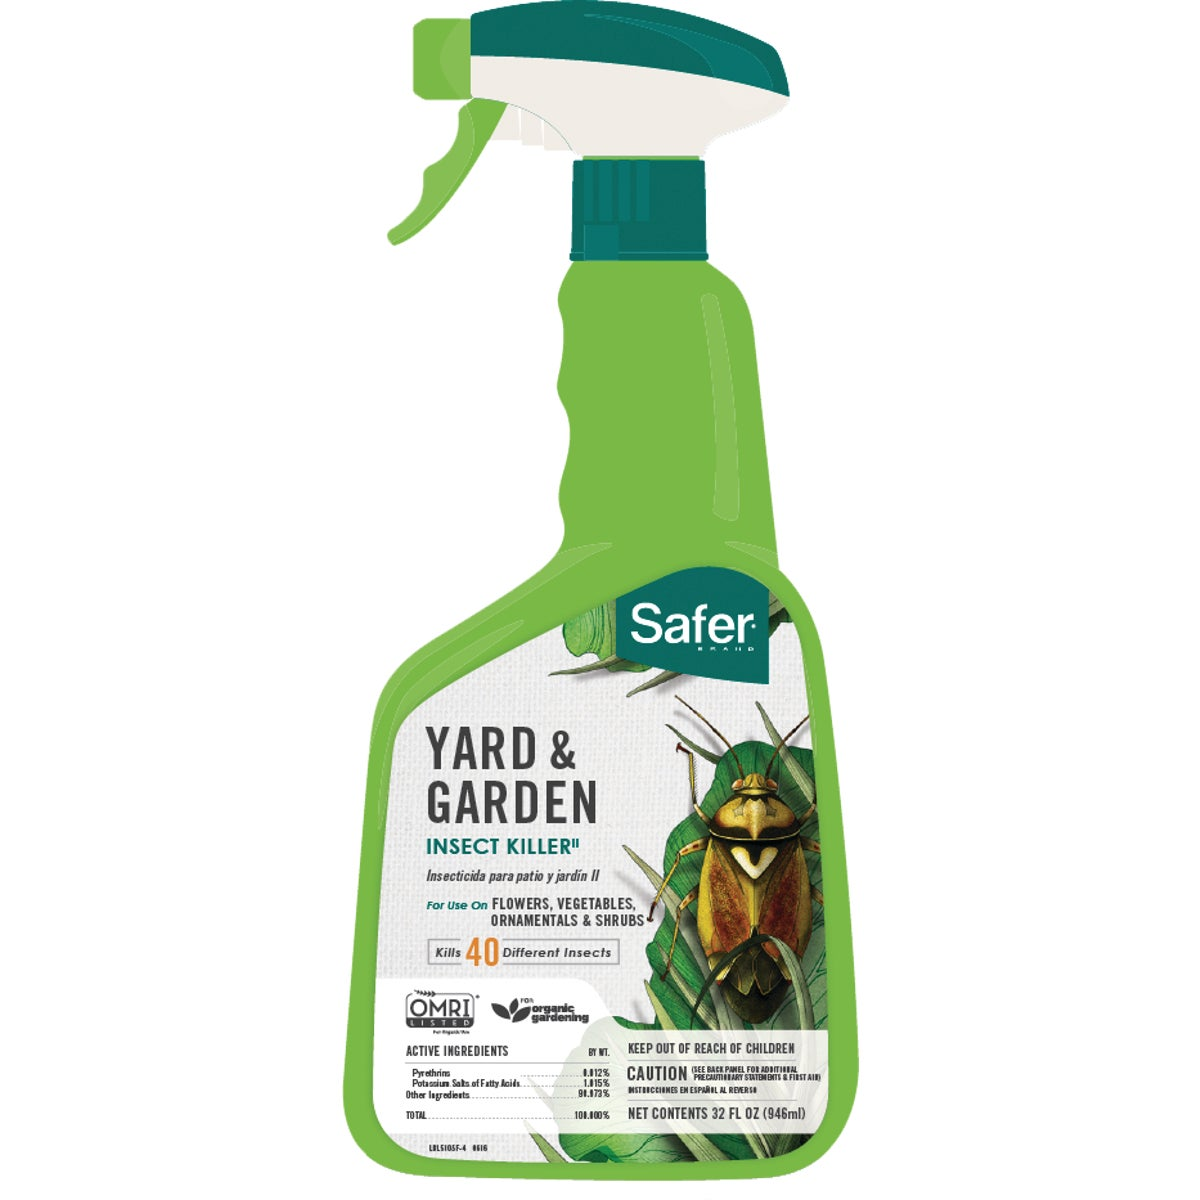 YARD/GARDN INSECT KILLER - 5105 by Woodstream Corp